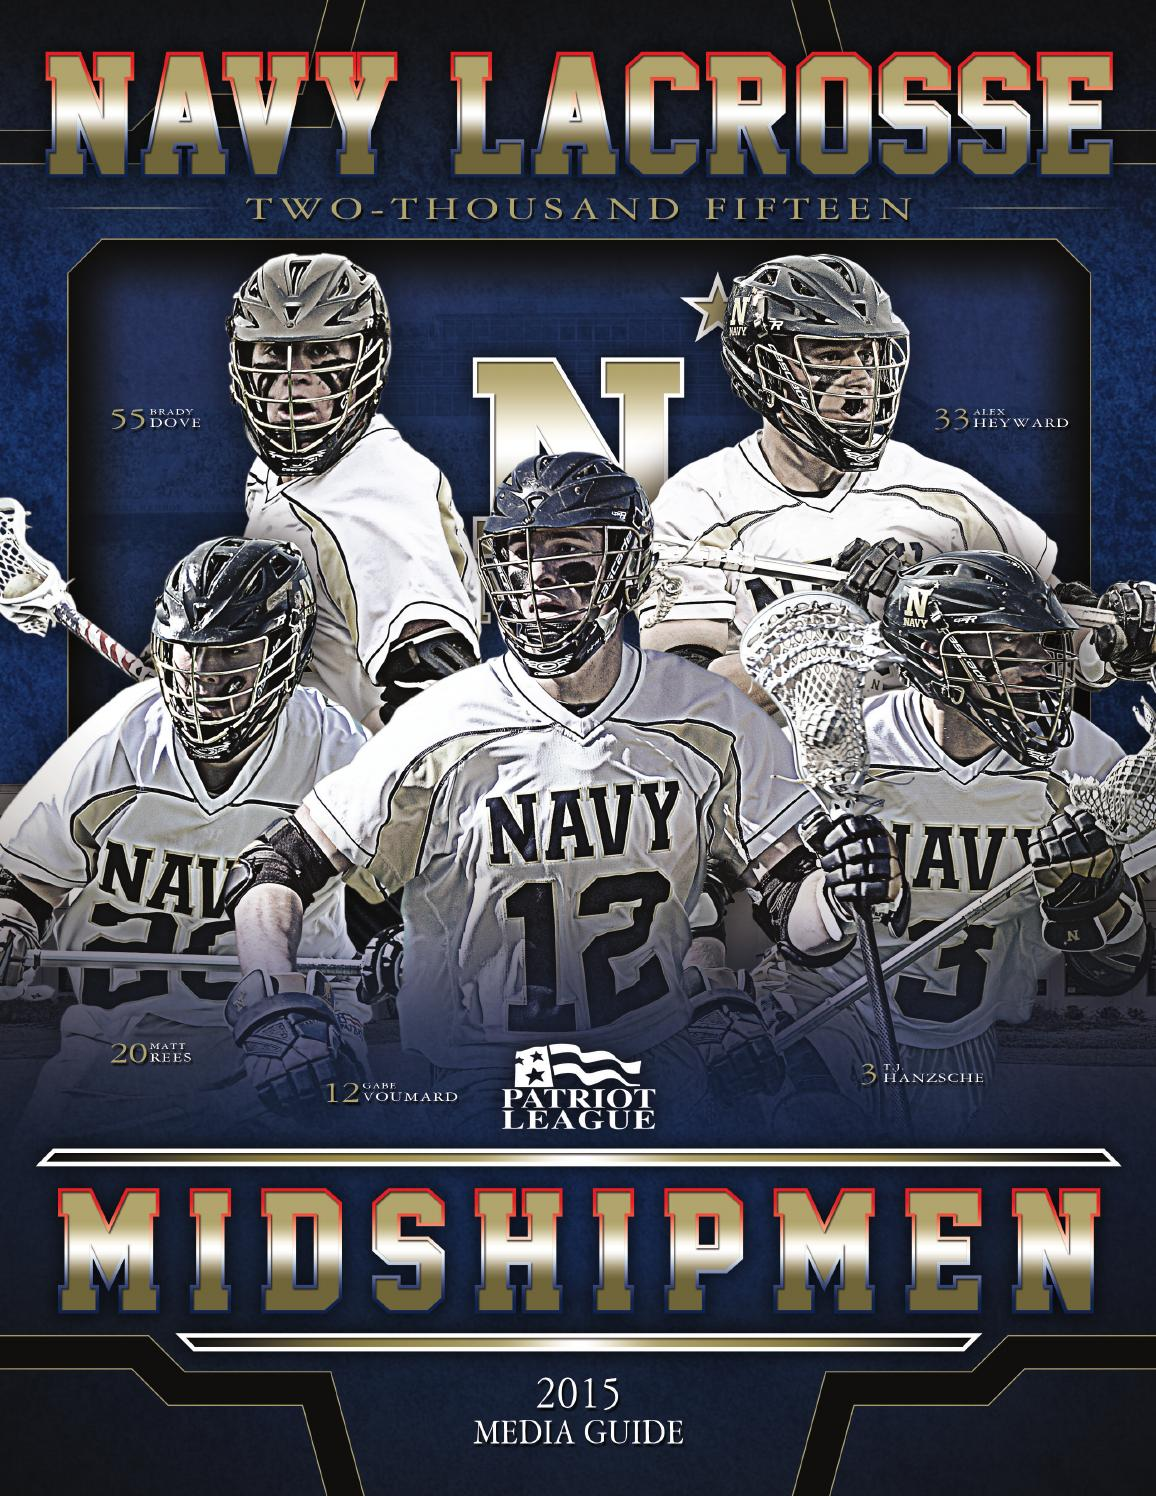 aa2012df6 2015 Men s Lacrosse by Naval Academy Athletic Association - issuu